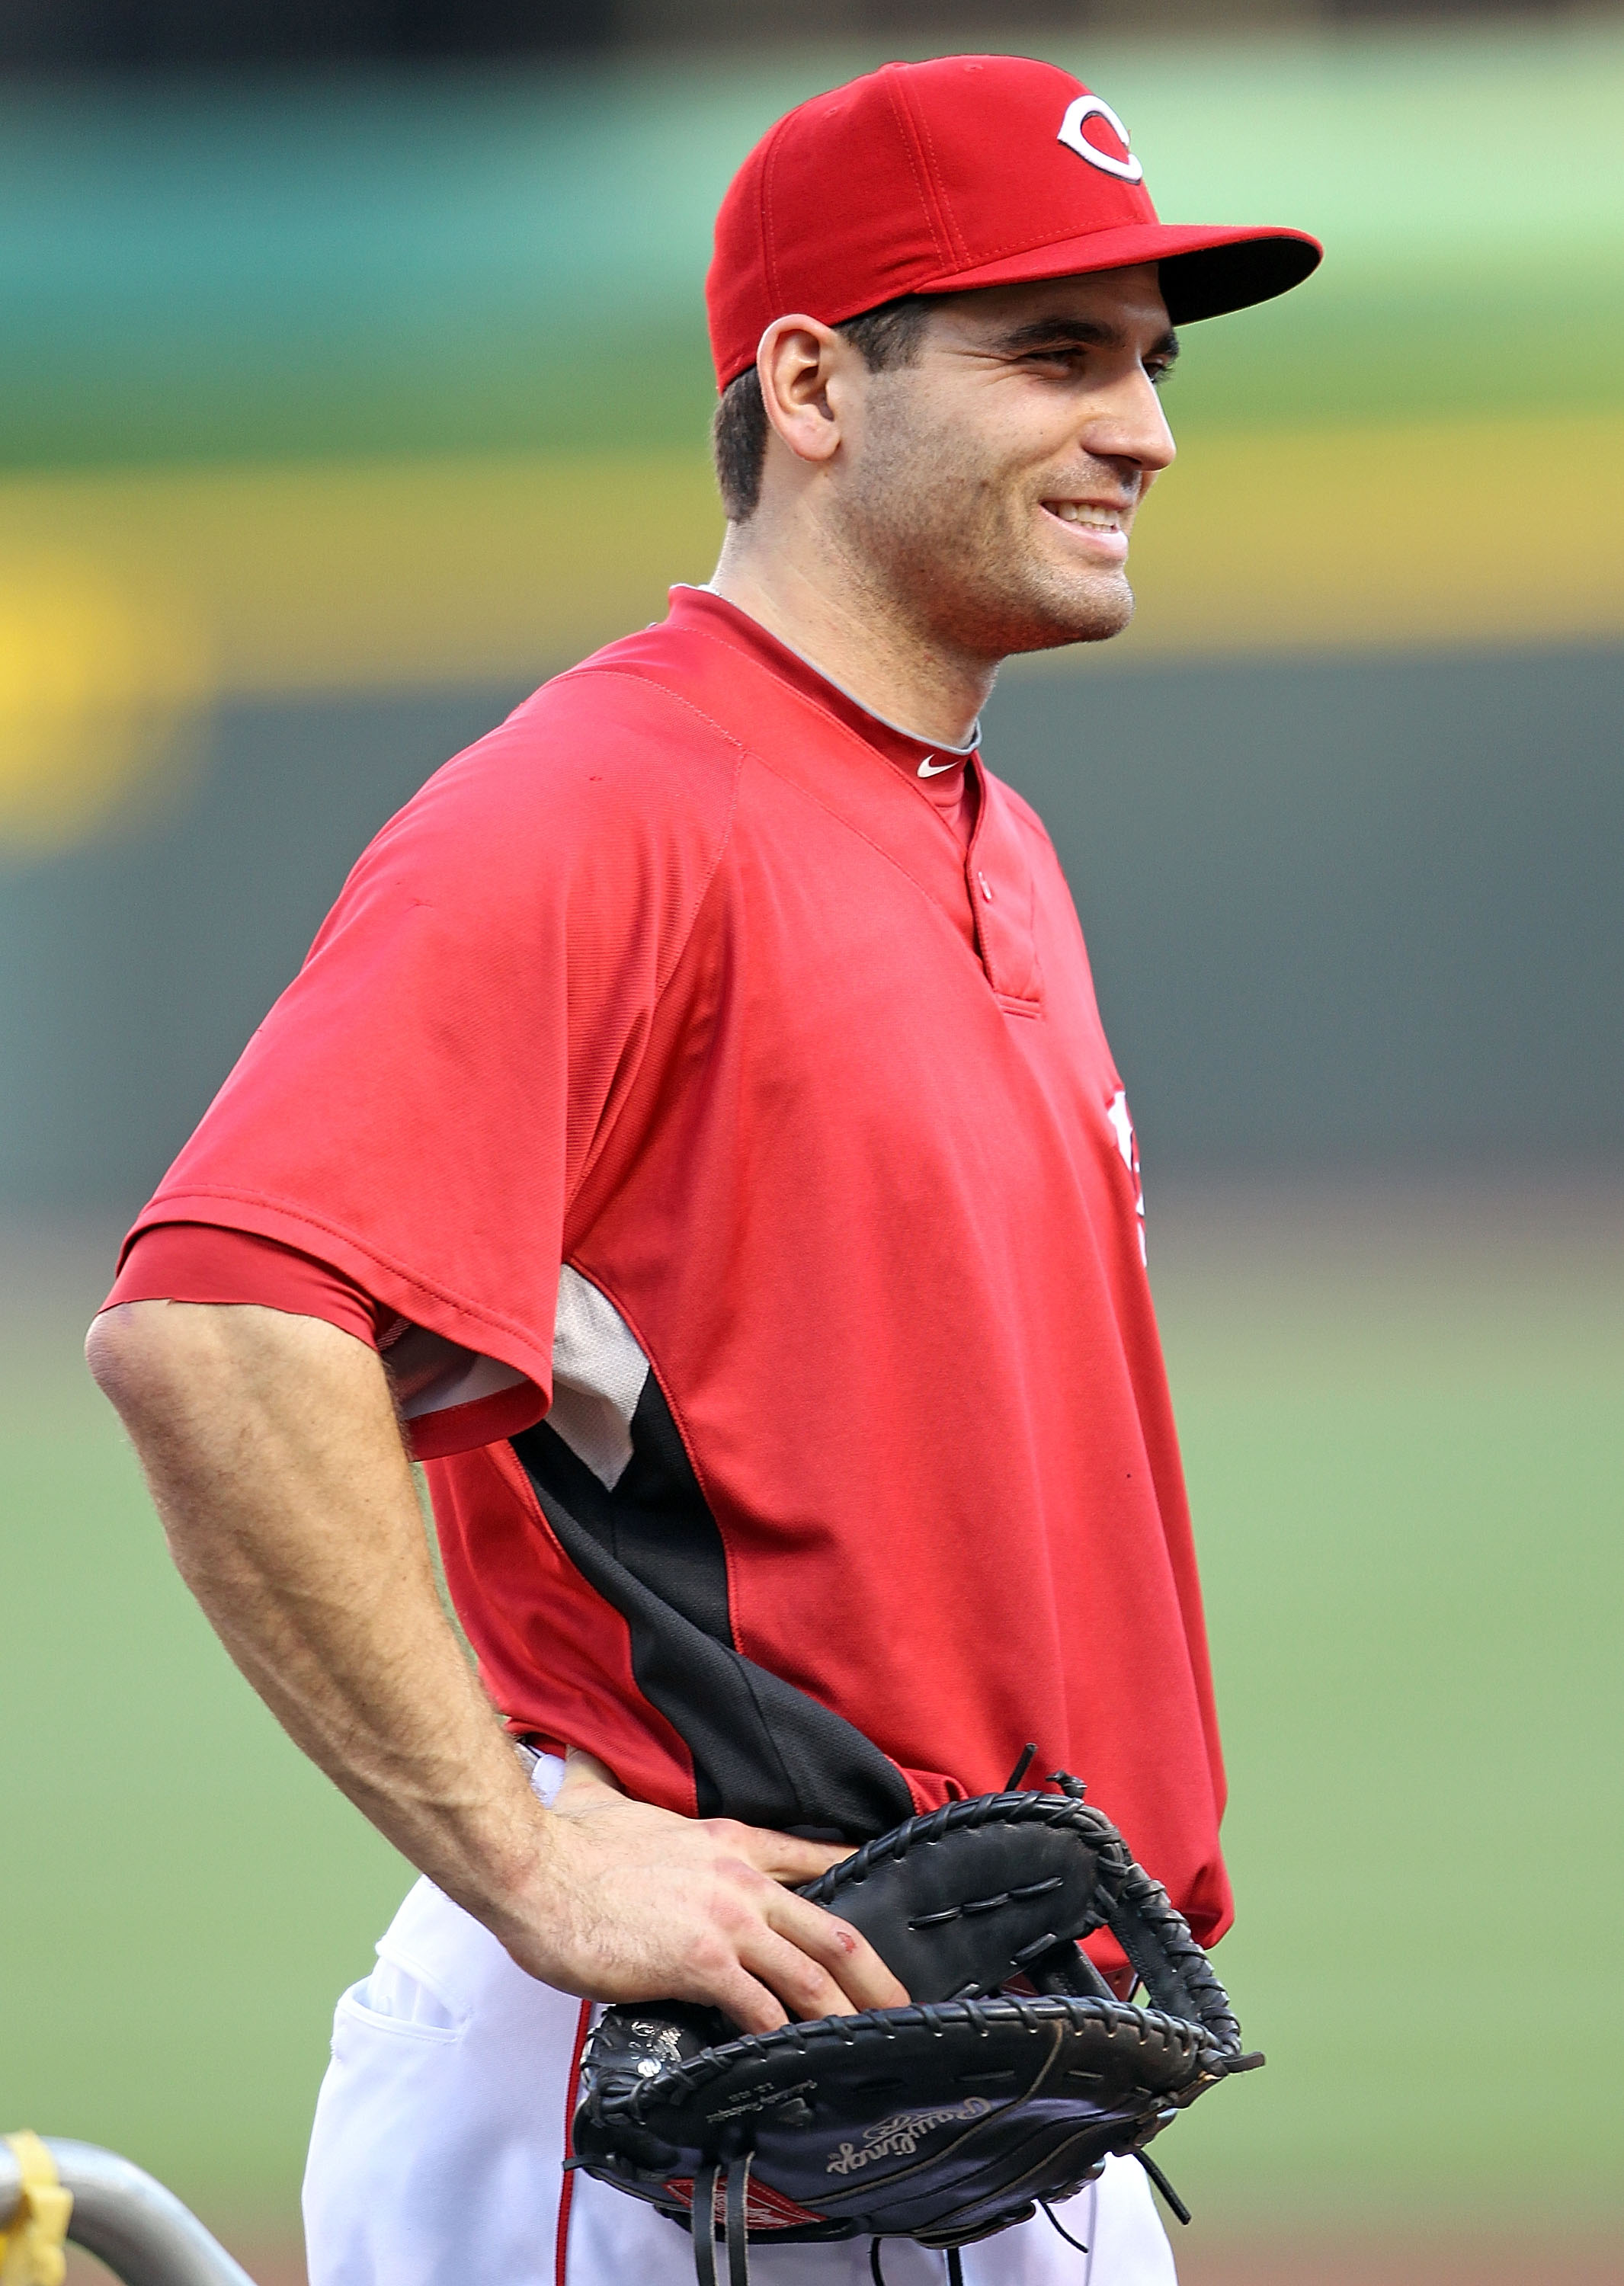 CINCINNATI - OCTOBER 10:  Joey Votto #19 of the Cincinnati Reds participates in batting practice before the start of  Game 3 of the NLDS against the Philadelphia Phillies  at Great American Ball Park on October 10, 2010 in Cincinnati, Ohio.  (Photo by And